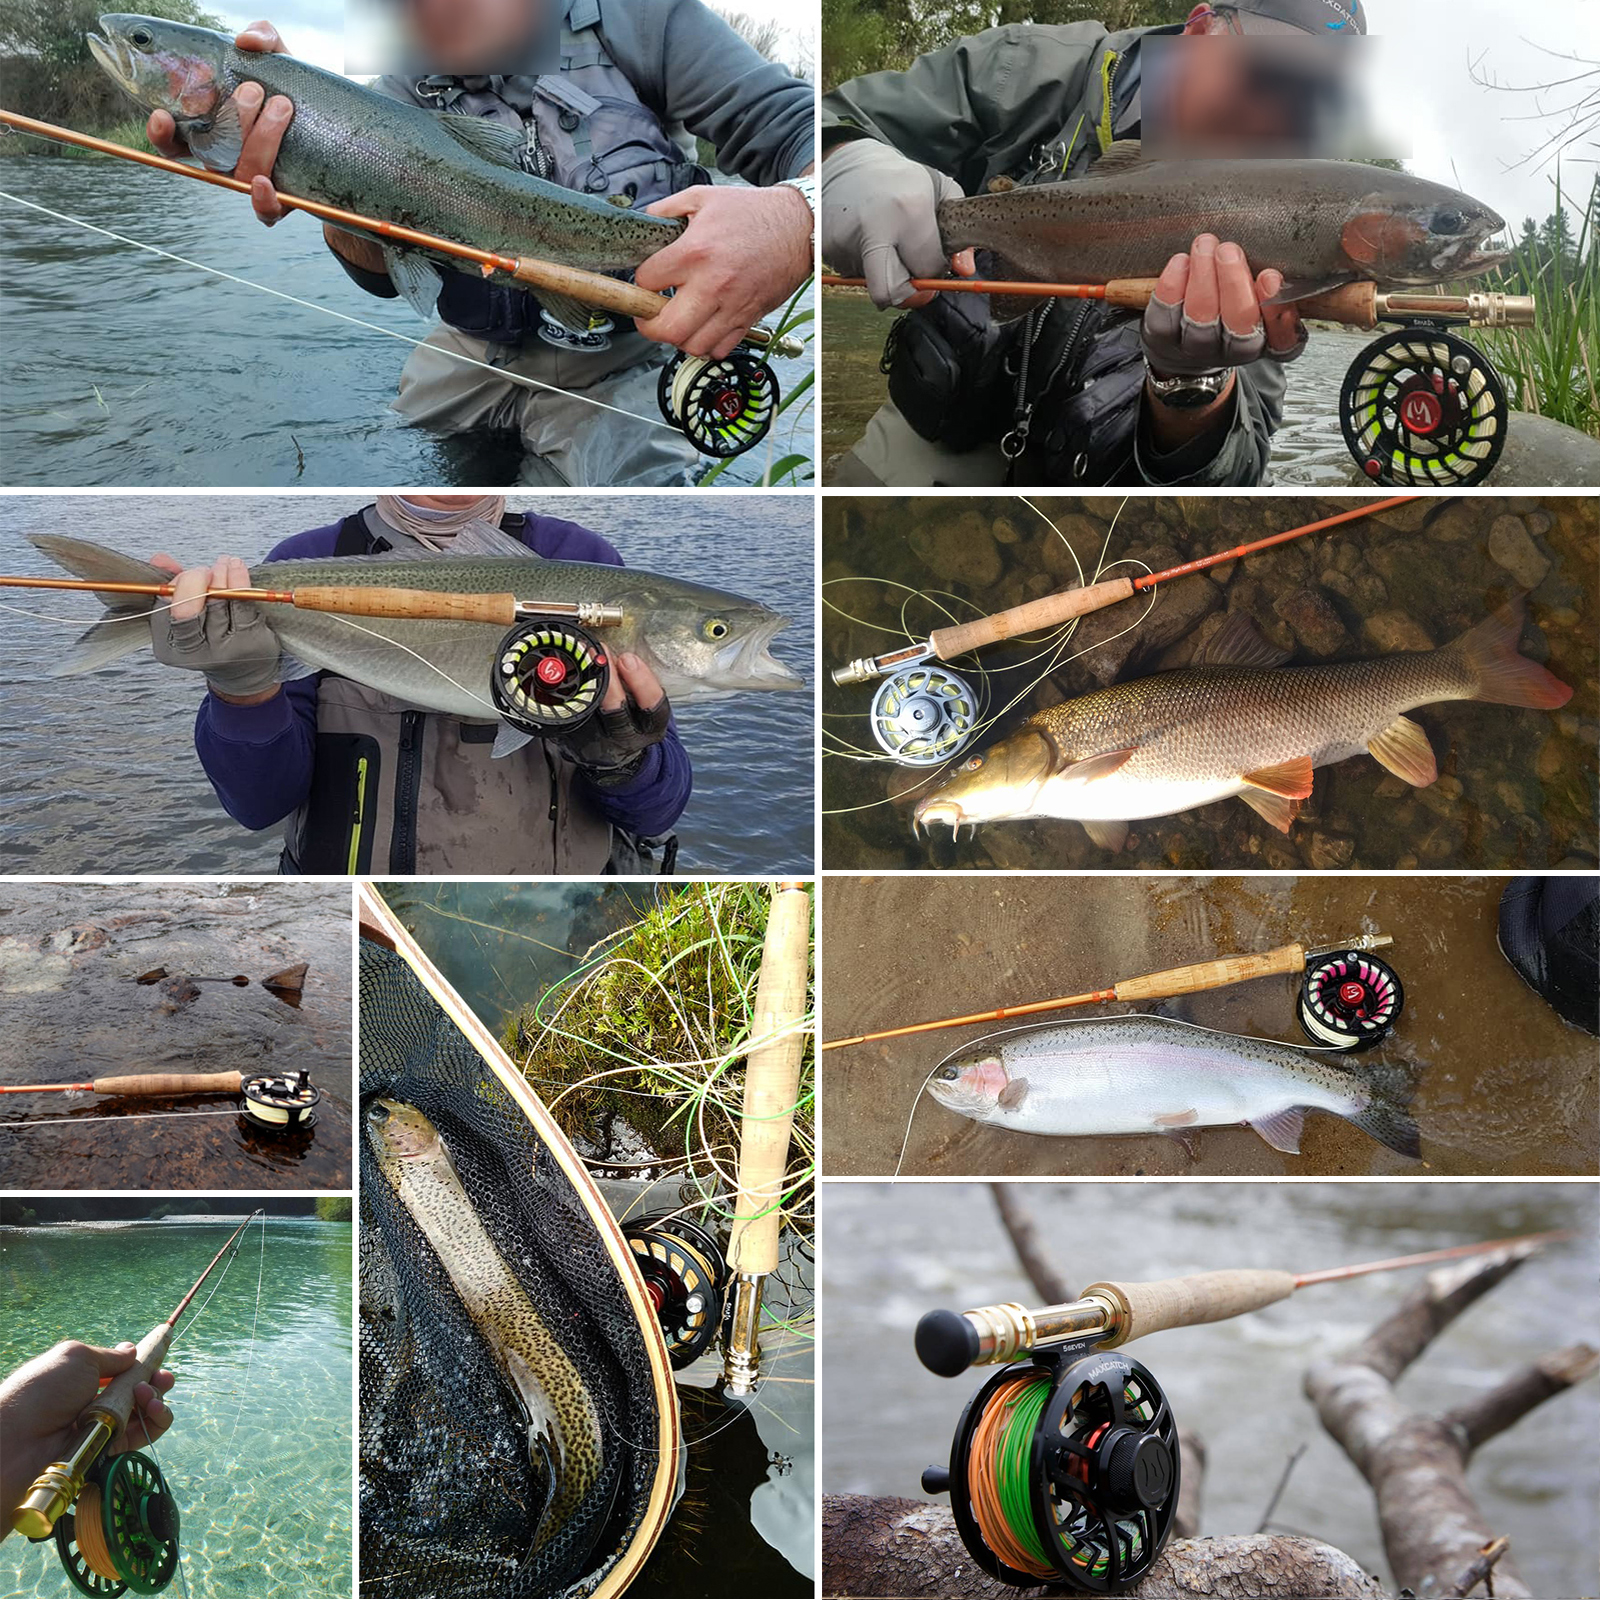 Maximumcatch Fly Rod IM12 40T+46T Toray Carbon Super Light Sensitive Fast Action Fly Fishing Rod With Carbon Tube 5/6/8WT 9FT